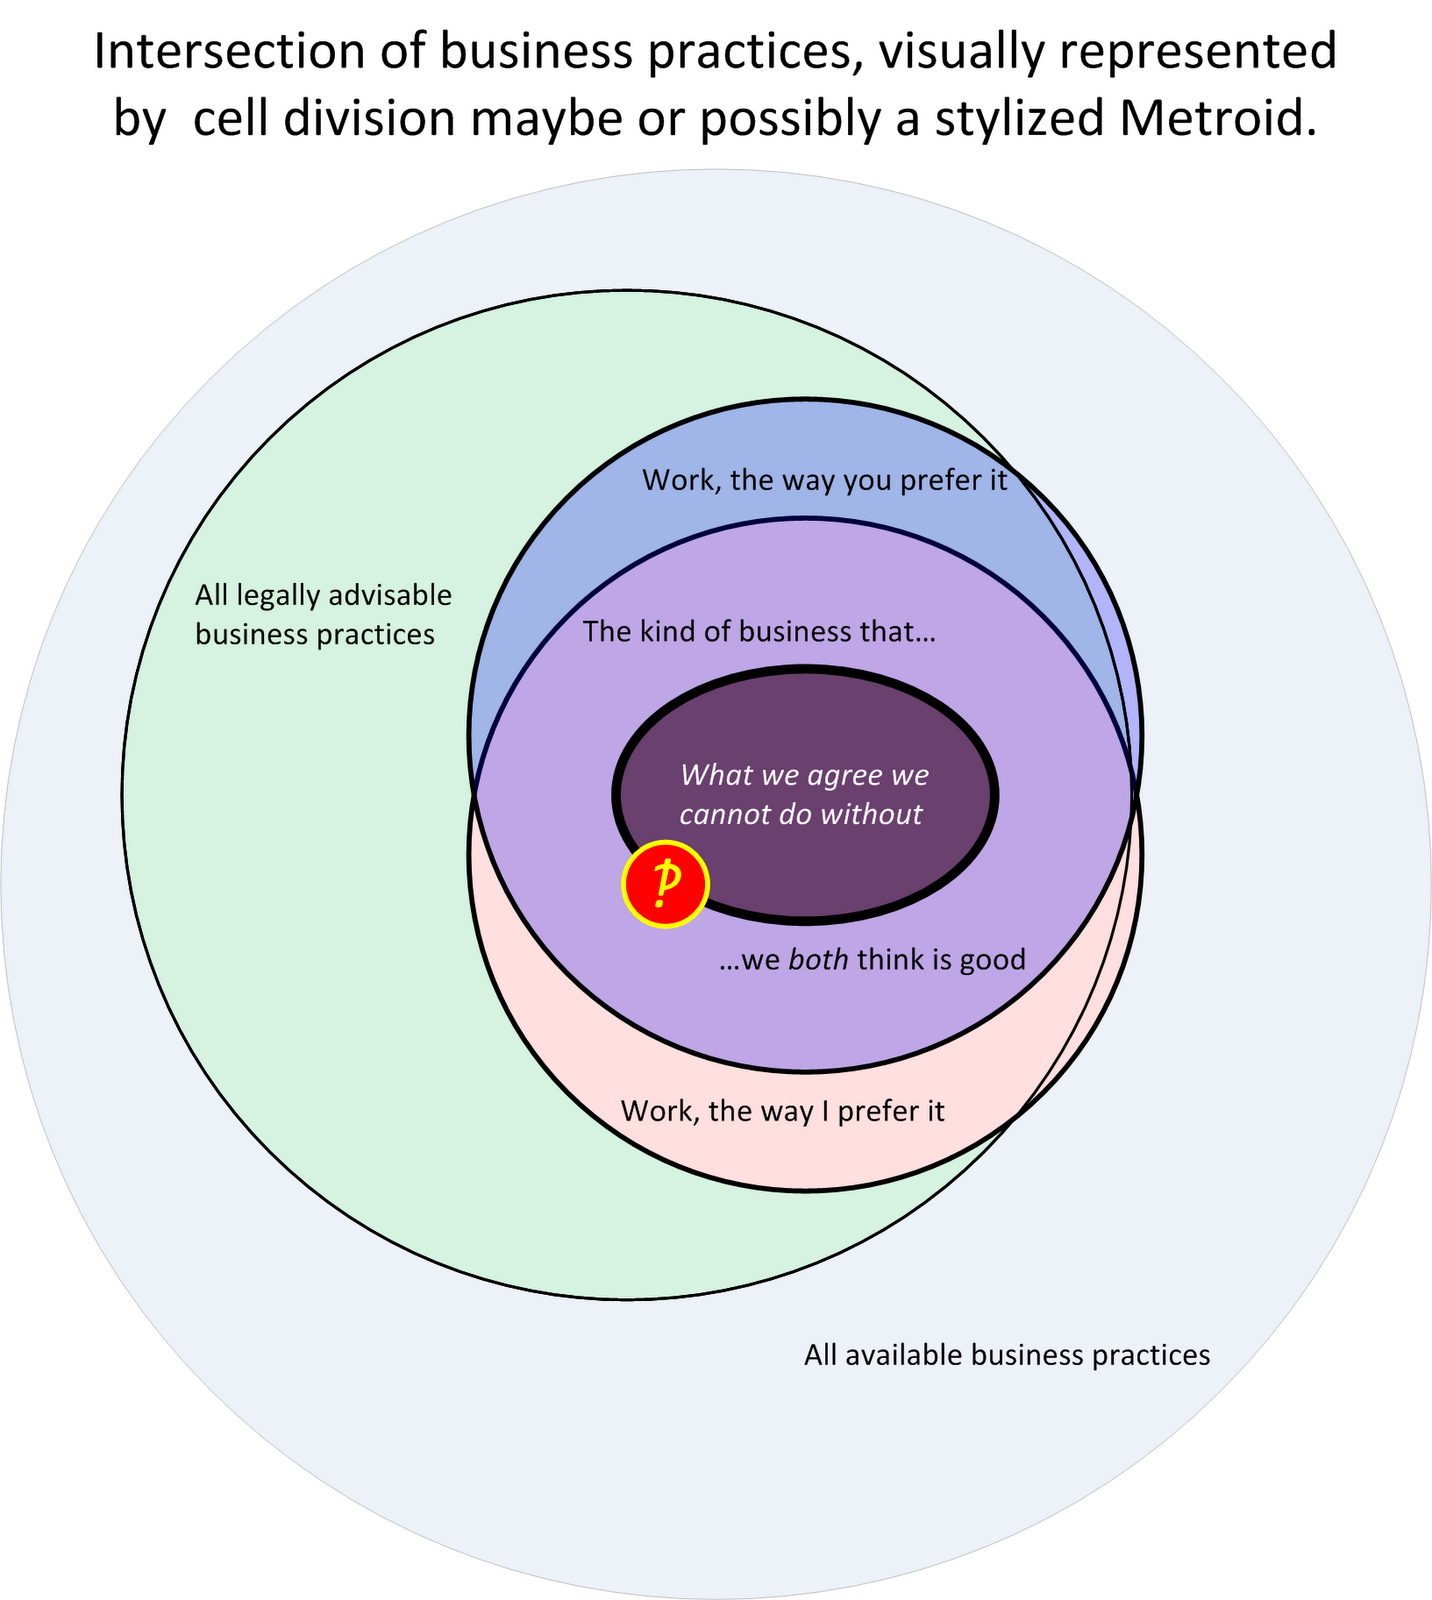 Intersection of business practices, visually represented by cell division maybe or possibly a stylized Metroid